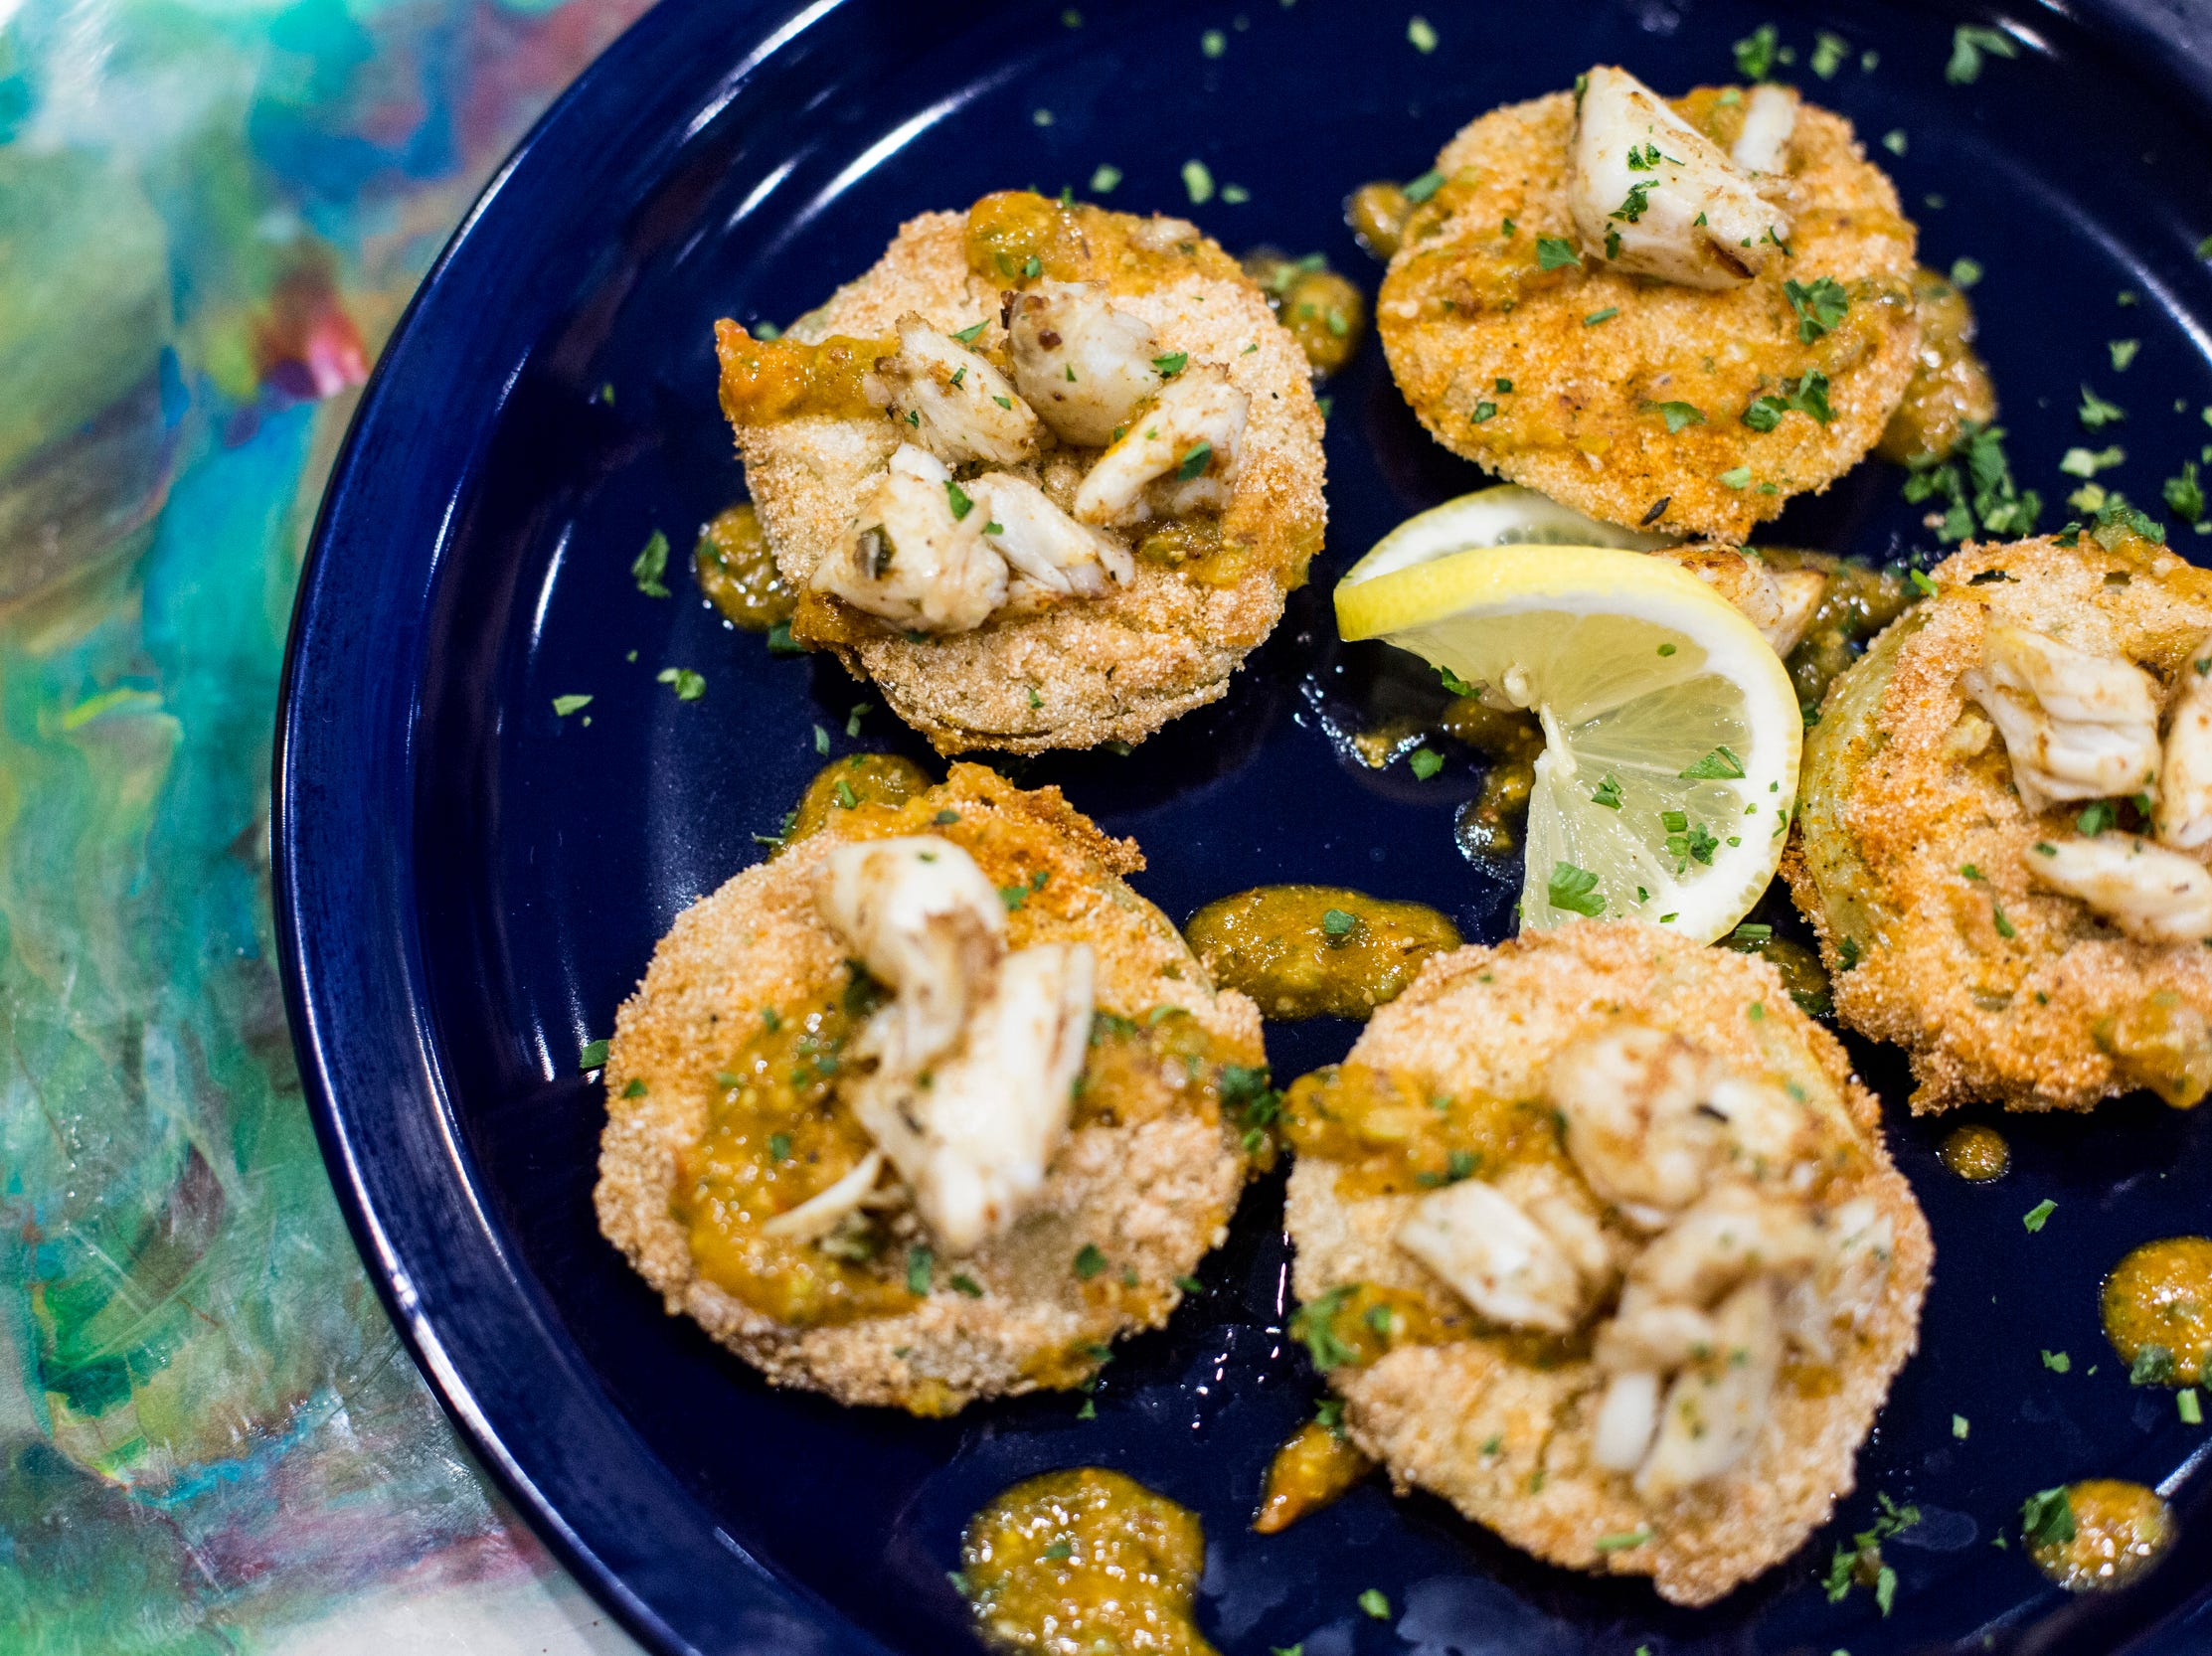 Fried green tomatoes featuring garden fresh green tomatoes hand-dipped and fried golden brown and topped with crab meat and remoulade are available at Elwood's Shells. Elwood's Shells is at 916 S. Cooper St.